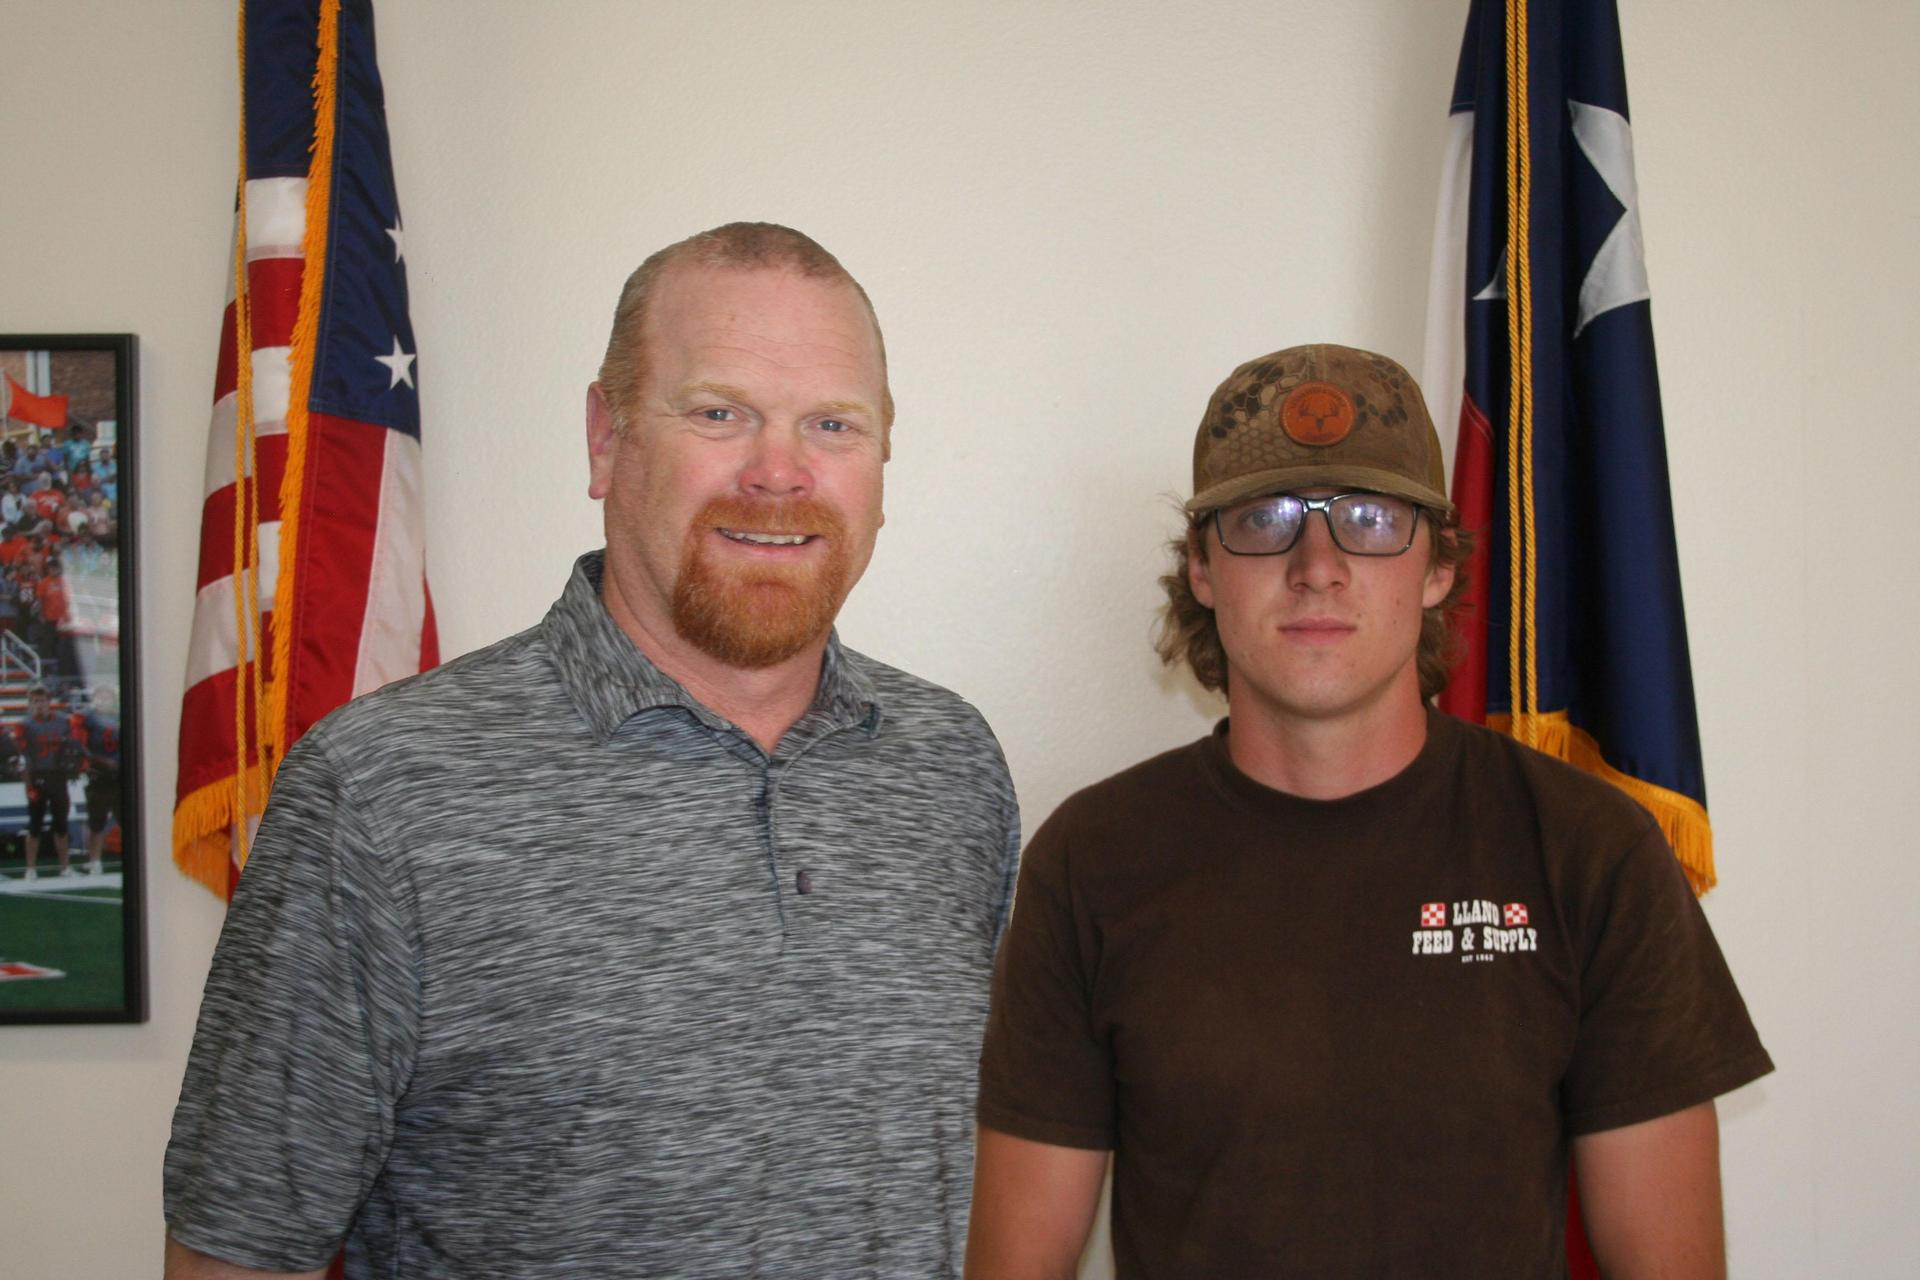 Mr. Edwards and Tyler Westermann